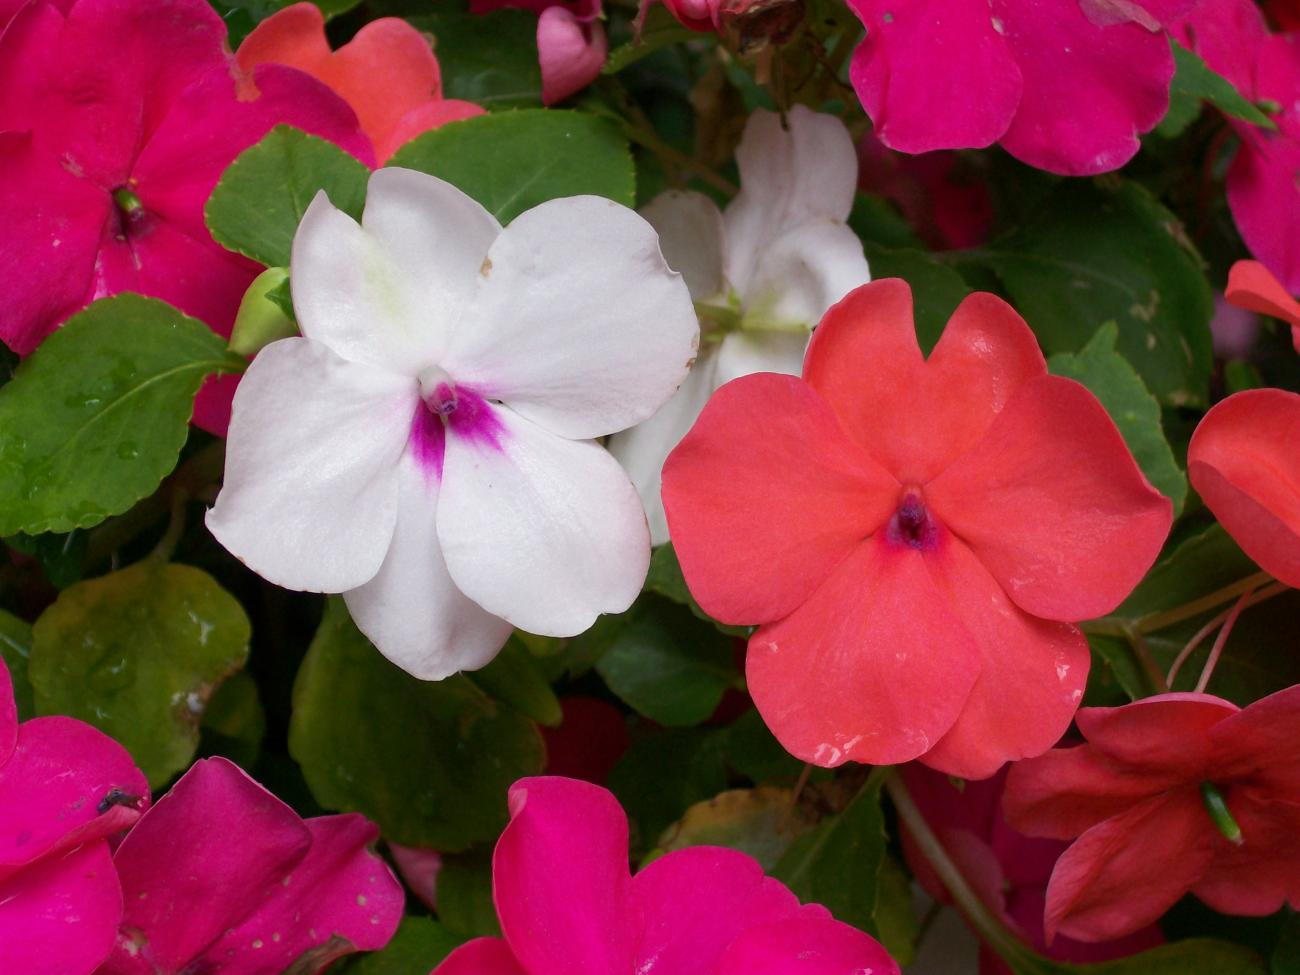 Impatiens how to plant grow and care for impatiens flowers the impatiens mightylinksfo